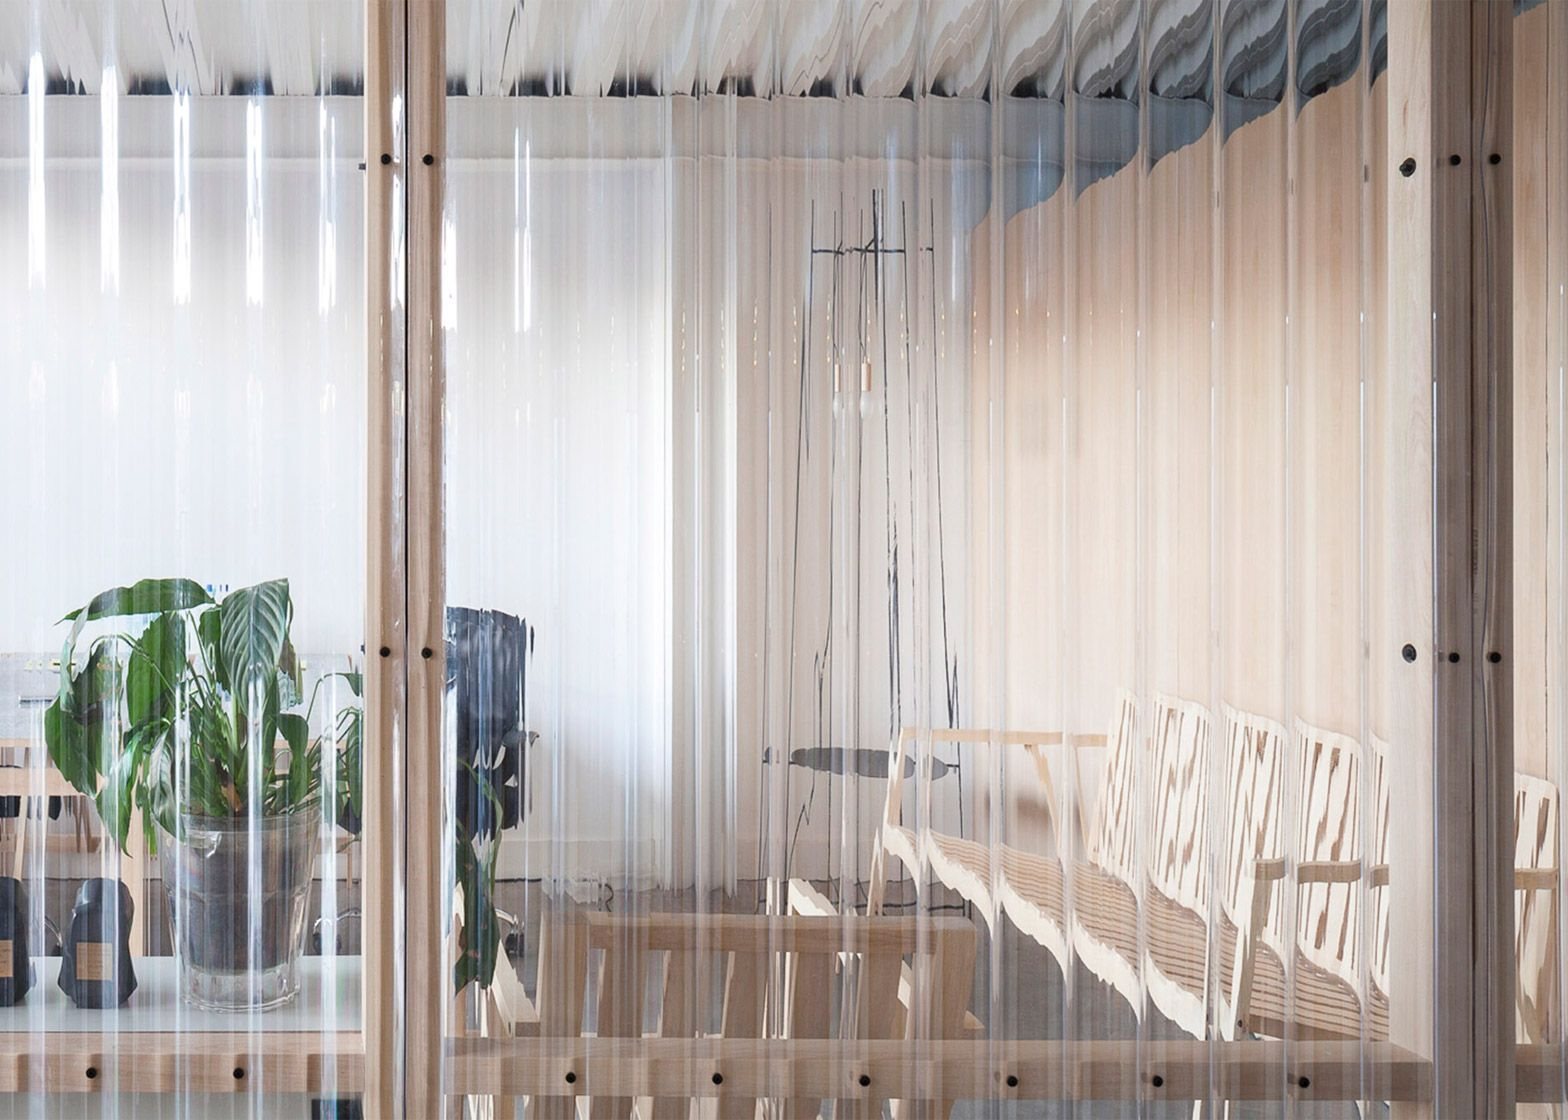 Http Www Dezeen Com 2015 11 03 It Met Argentina Modular Panels Flexible Workspace Buenos Aires Ad Agency Cir Work Space Corrugated Roofing Corrugated Plastic